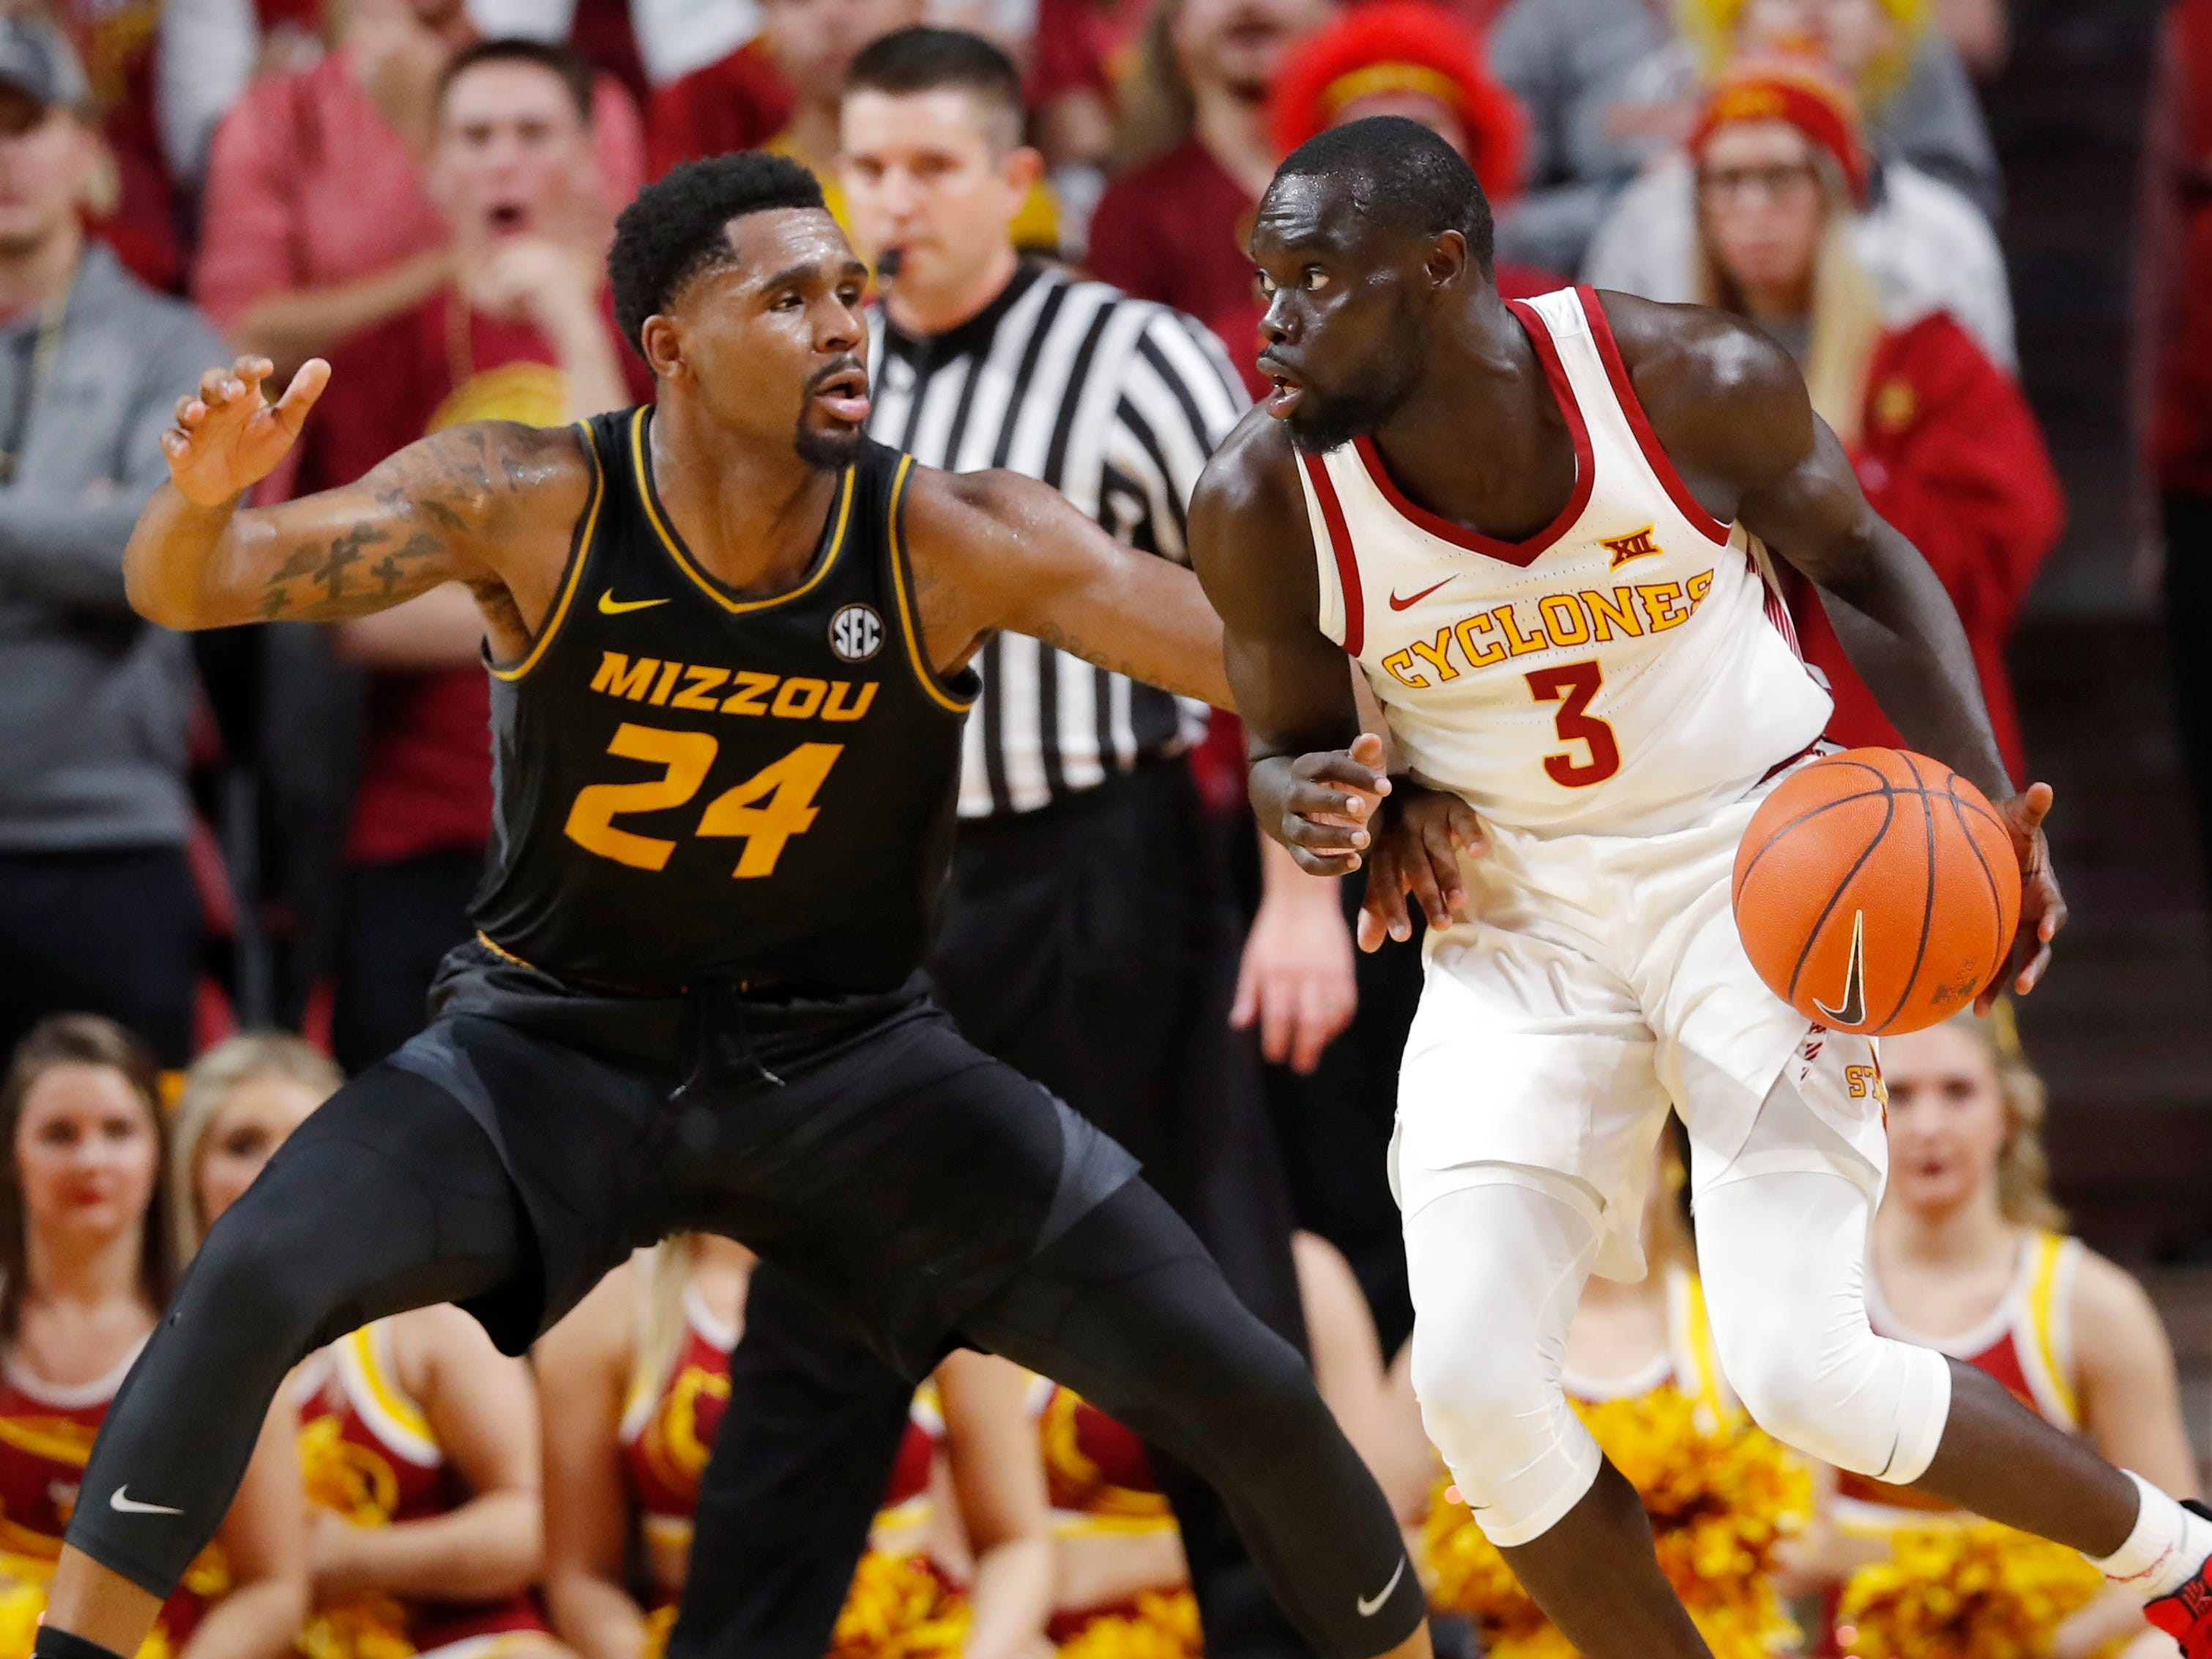 Iowa State guard Marial Shayok drives past Missouri forward Kevin Puryear, left, during the second half of an NCAA college basketball game, Friday, Nov. 9, 2018, in Ames, Iowa. Iowa State won 76-59.